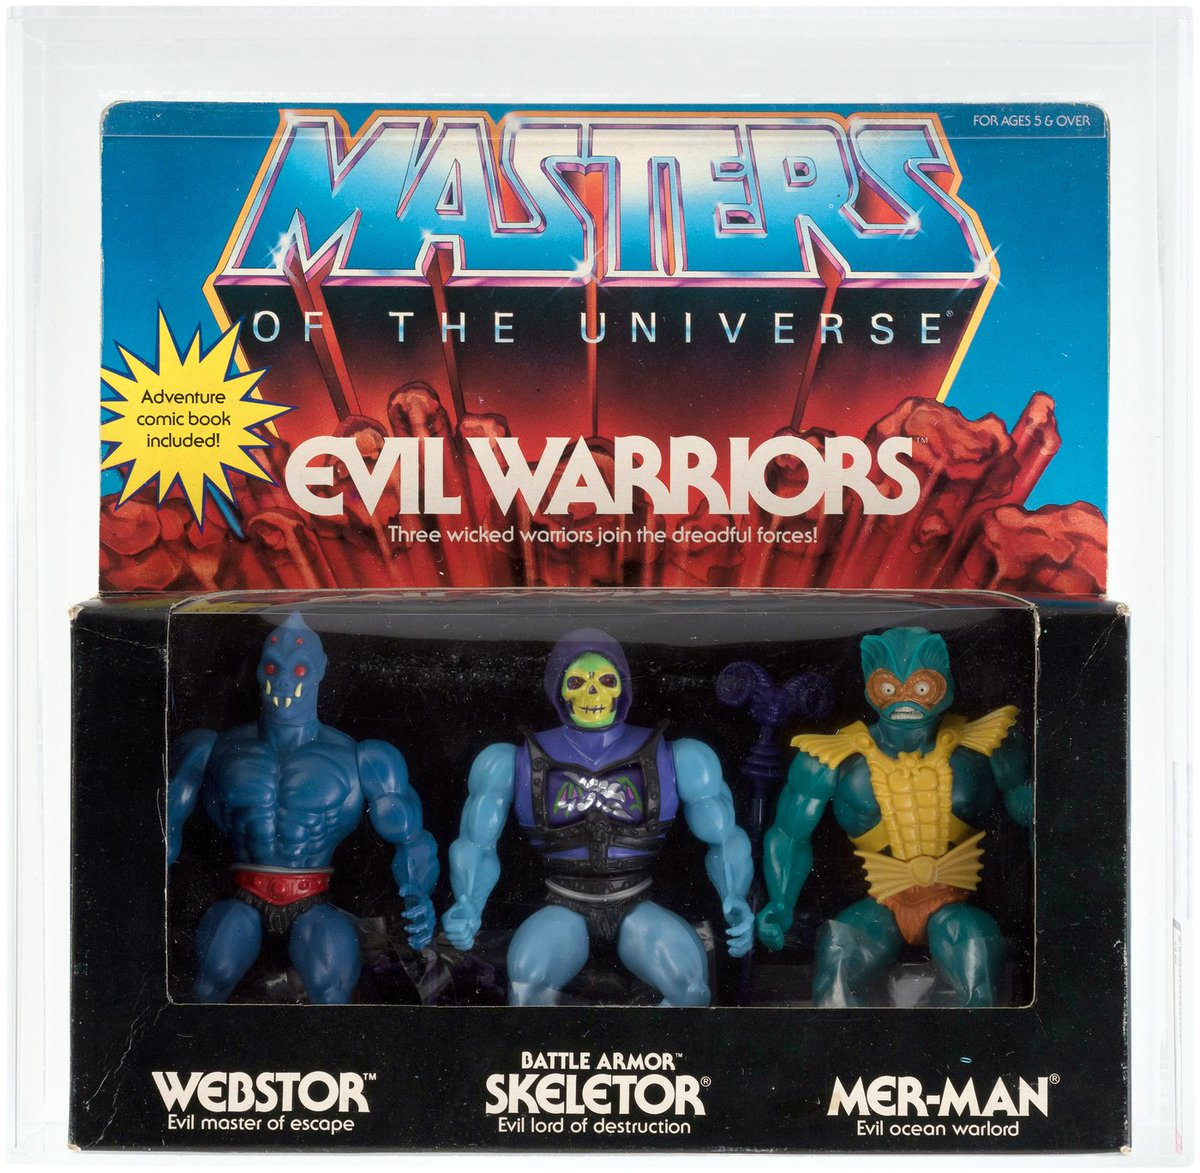 Heads up '80s kids! Did you see the $ @HakesAuctions recently got for this #MIB #MastersOfTheUniverse #EvilWarriors #3Pack featuring #Webstor #BattleArmorSkeletor & #Merman? This #AFA 80 NM set sold for $2,035! #Mattel #MOTU #HeMan #Skeletor #actionfigures #MOTUNation